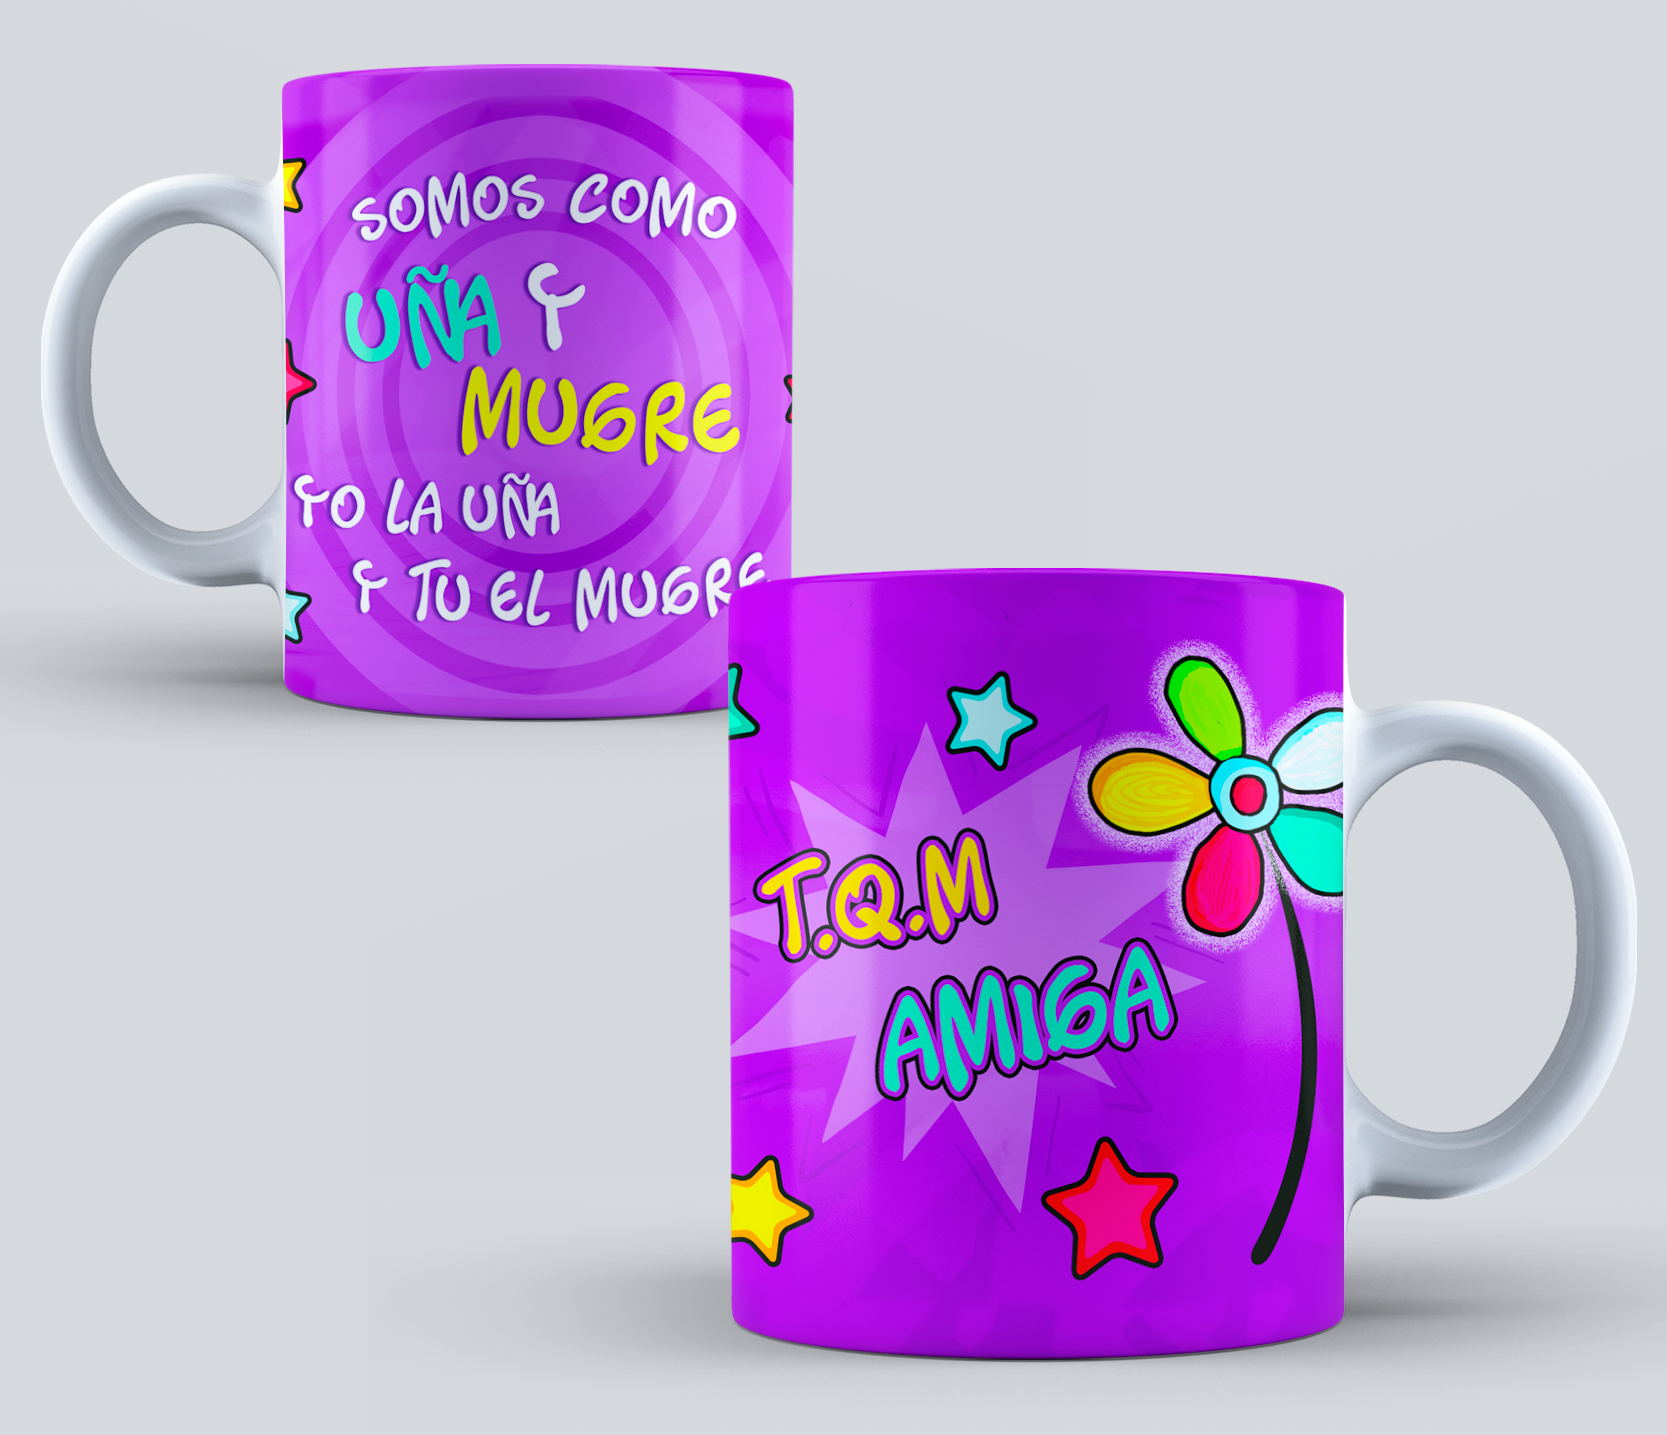 Templates amistad para sublimar mugs version 3 dise os for Disenos para tazas